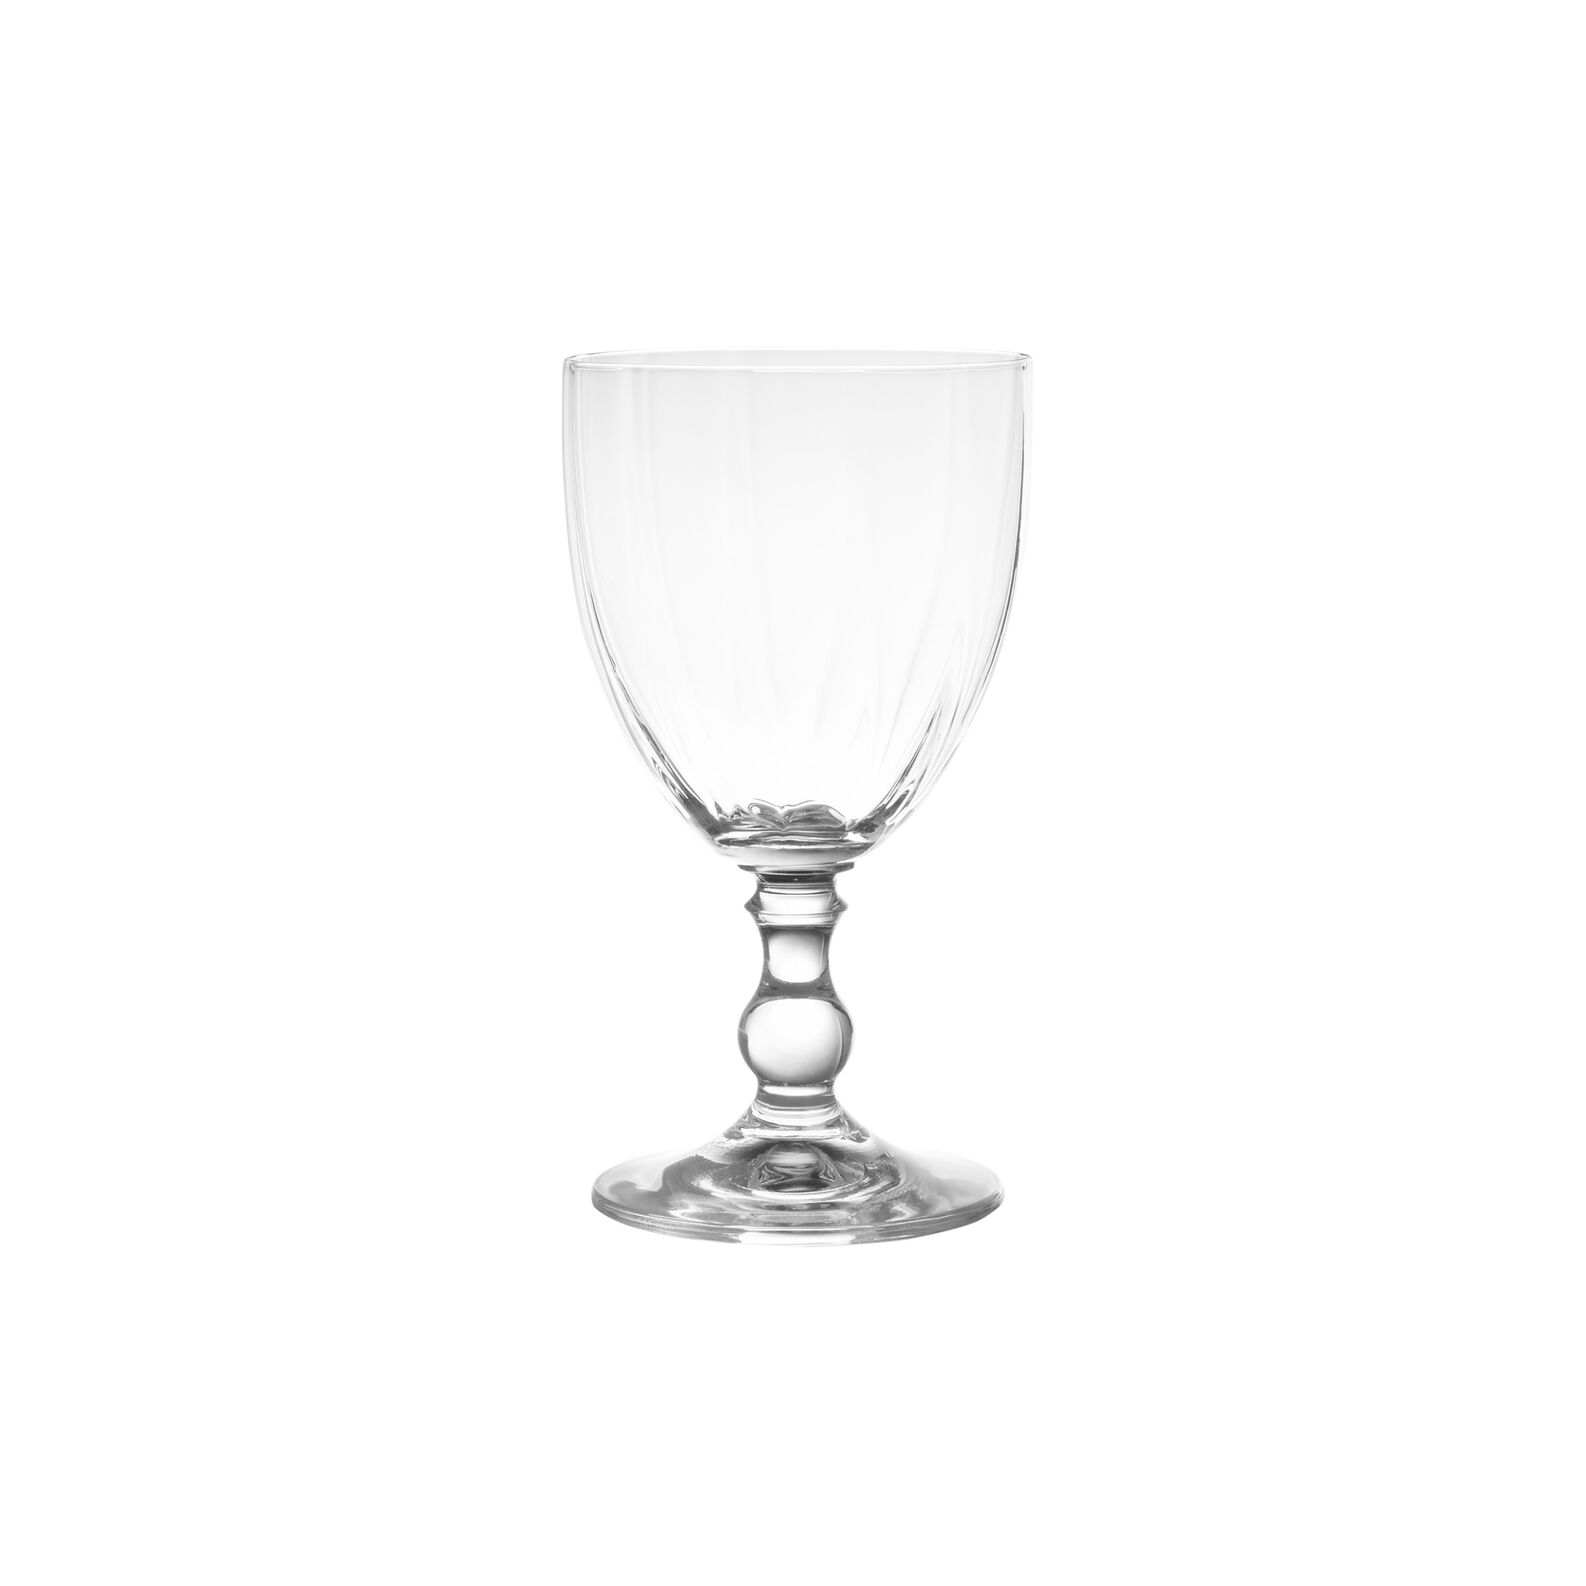 Bohemia Margot crystal wine glass